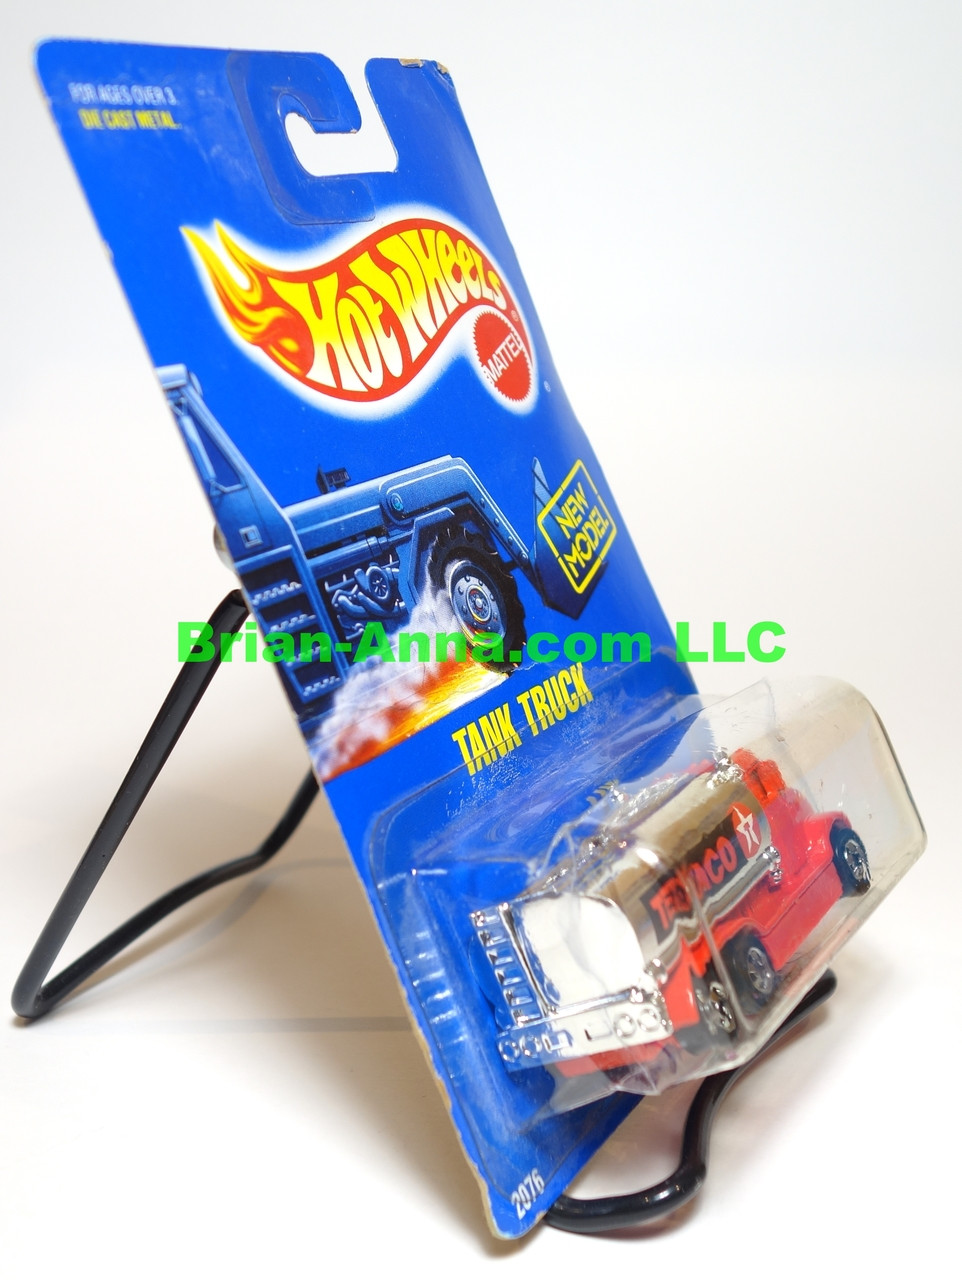 Hot Wheels Prototype/Sample, Tank Truck with Texaco artwork, BW wheels